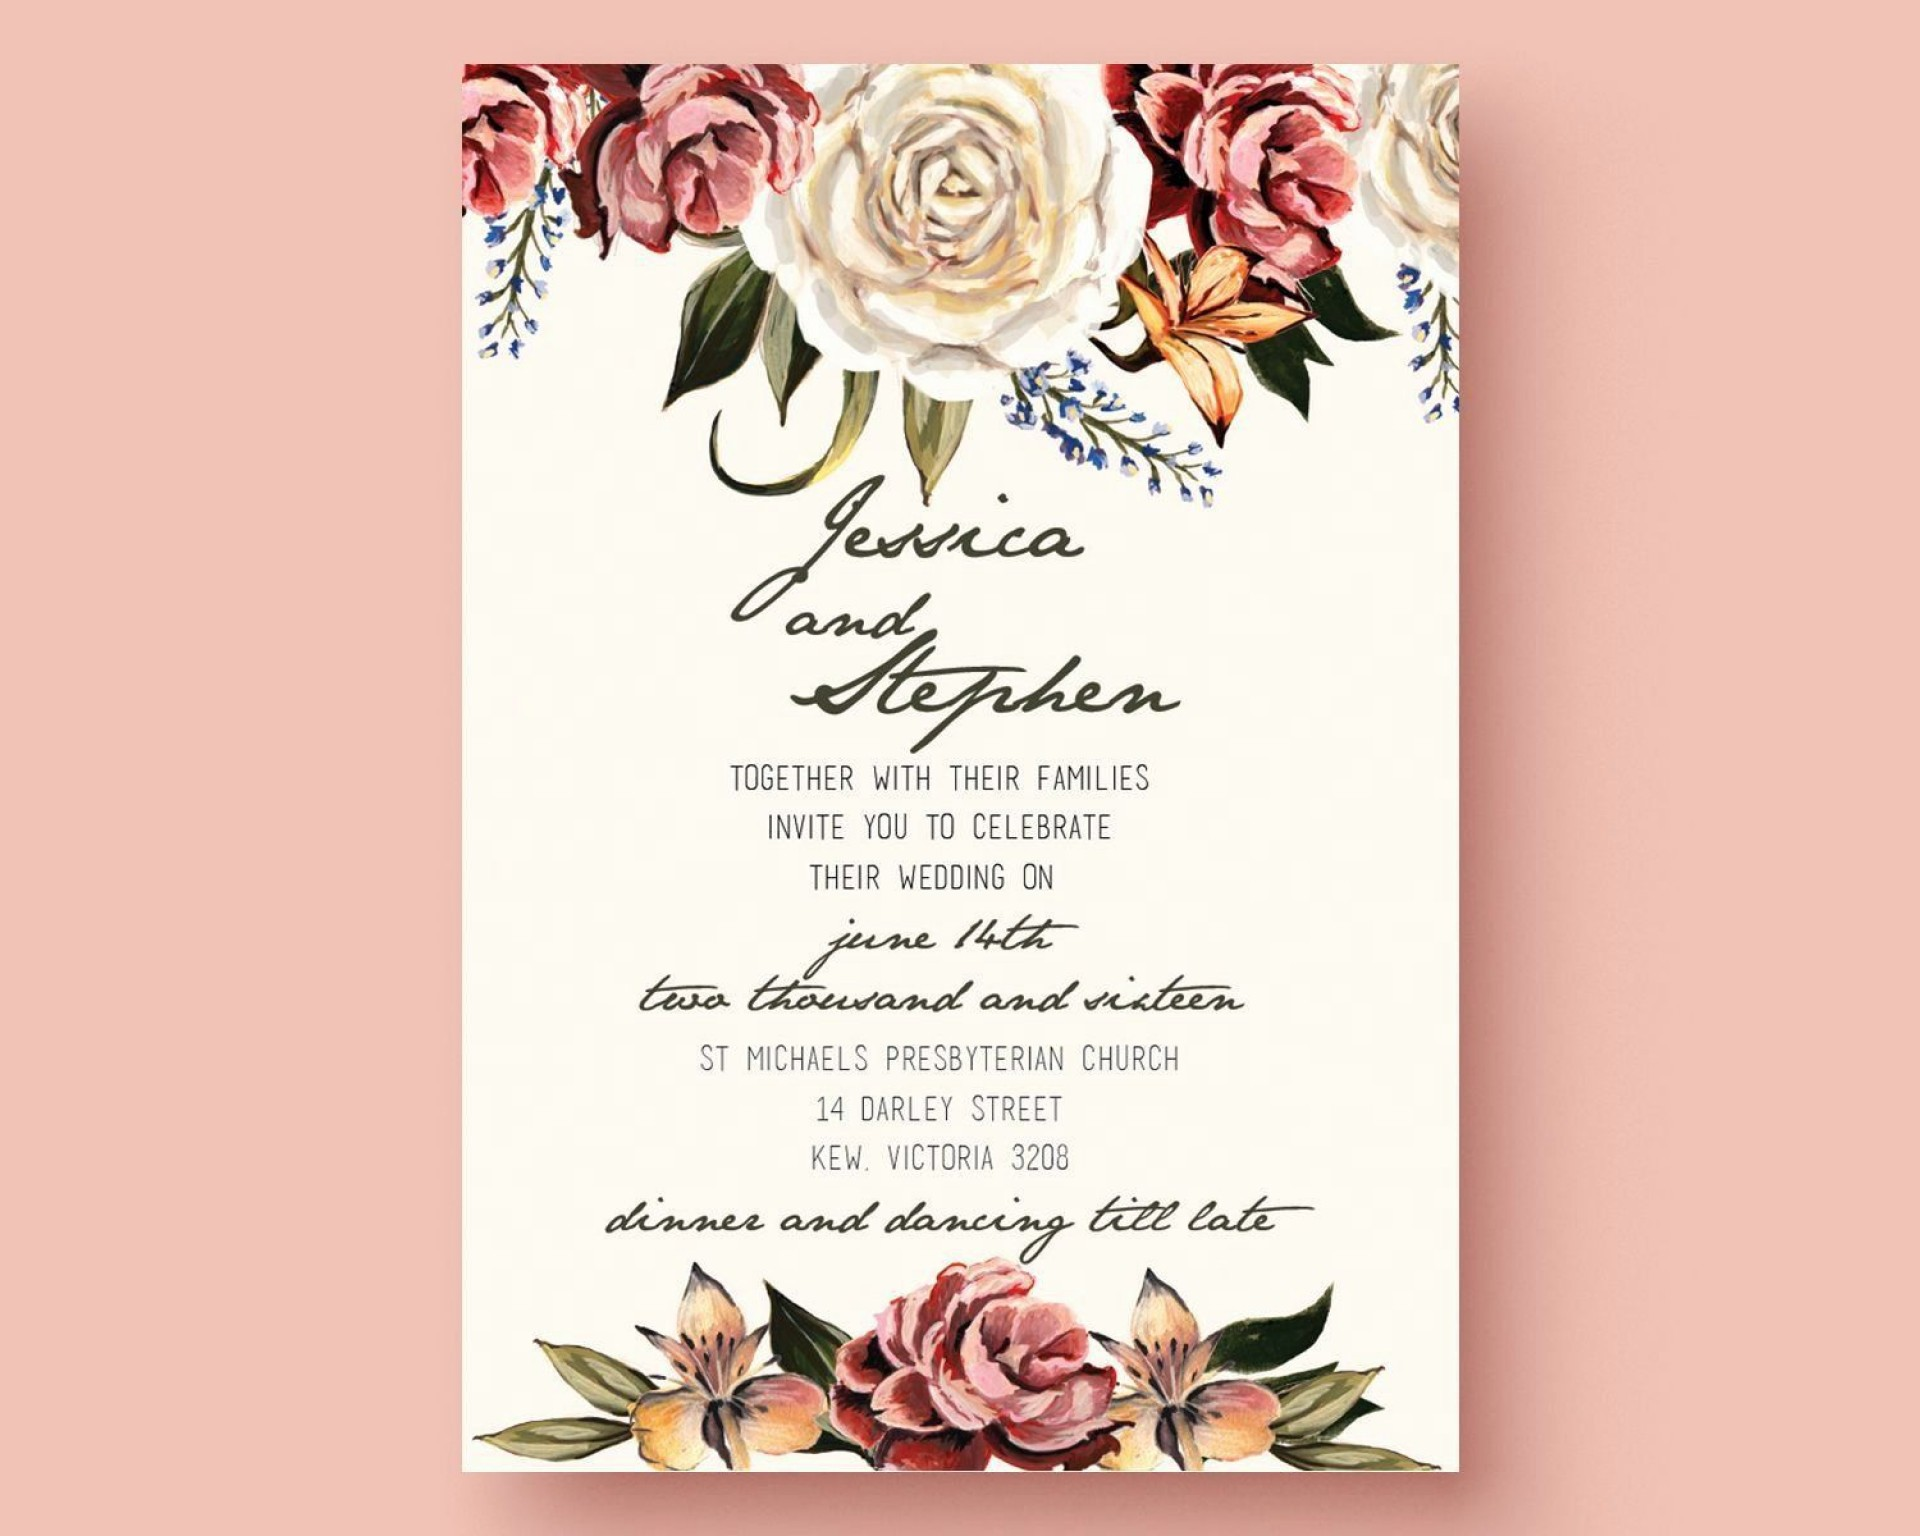 001 Awful Free Wedding Invitation Template For Word 2019 Idea 1920